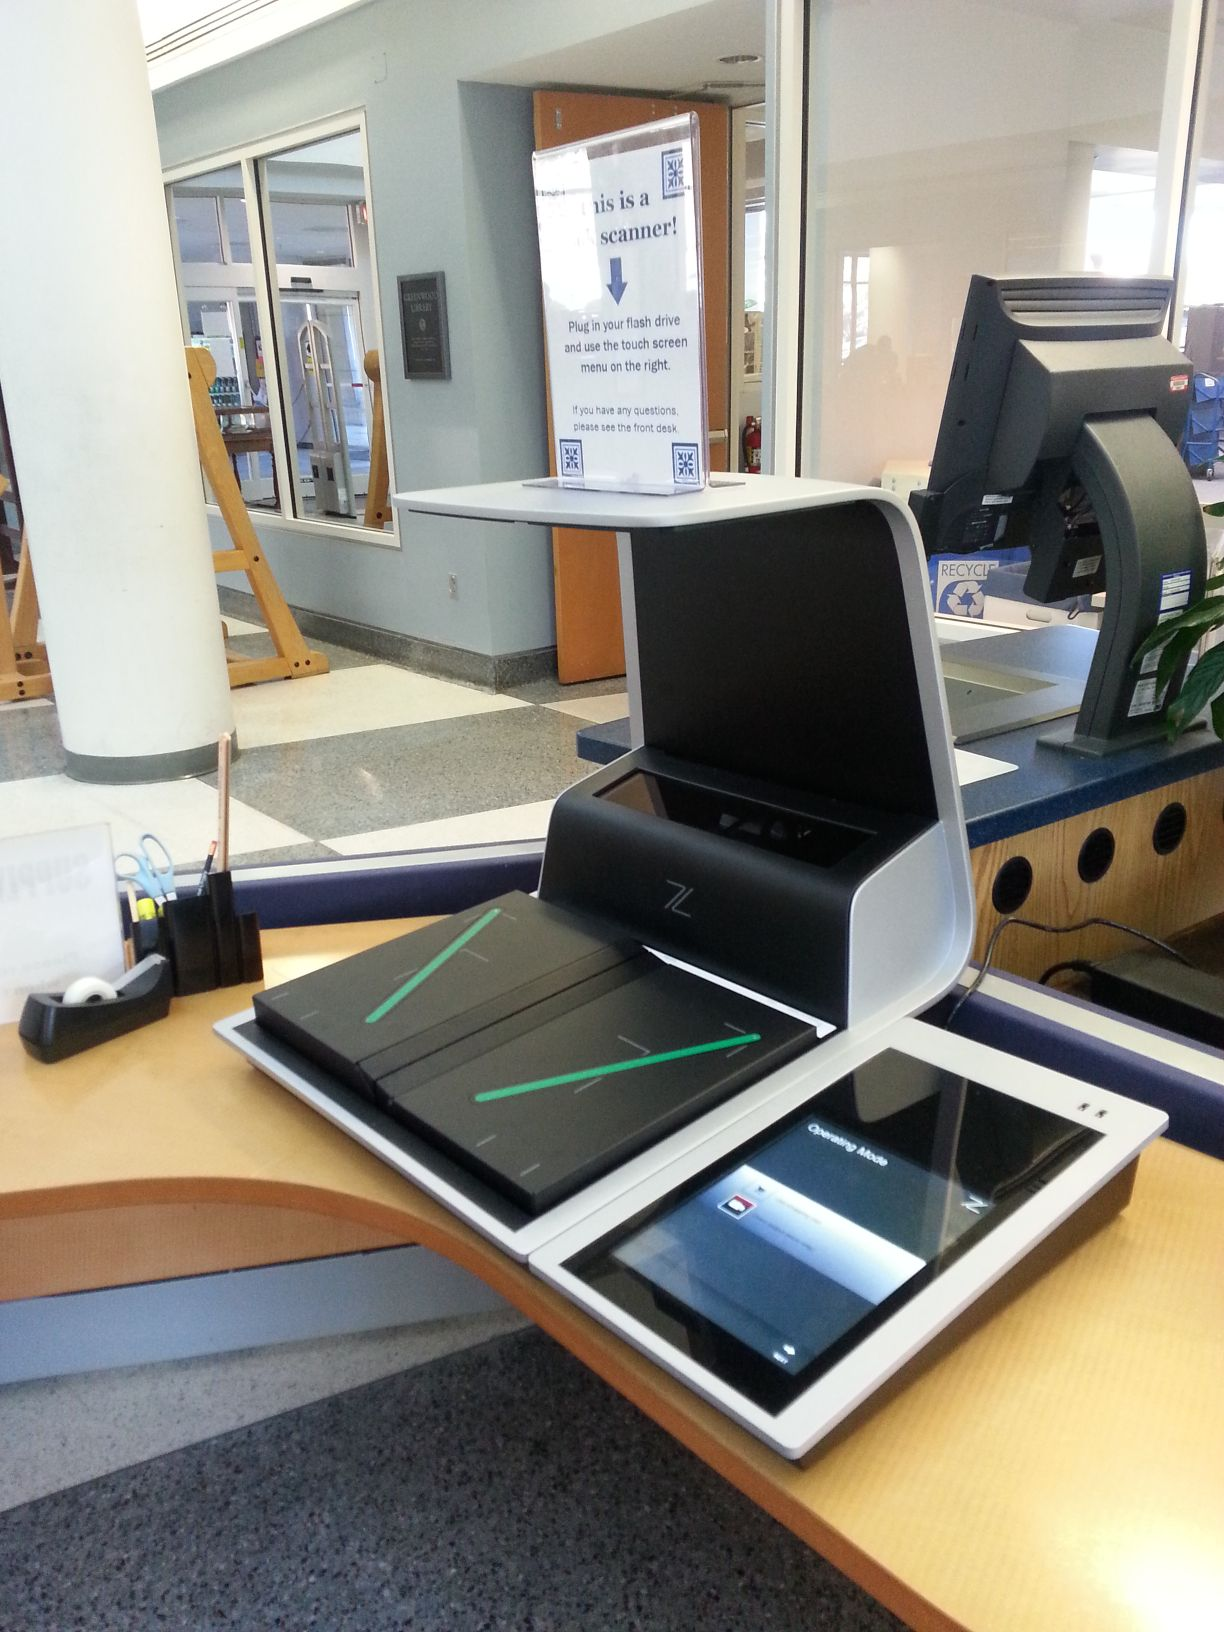 How to: Use the new book scanner | Longwood University Library